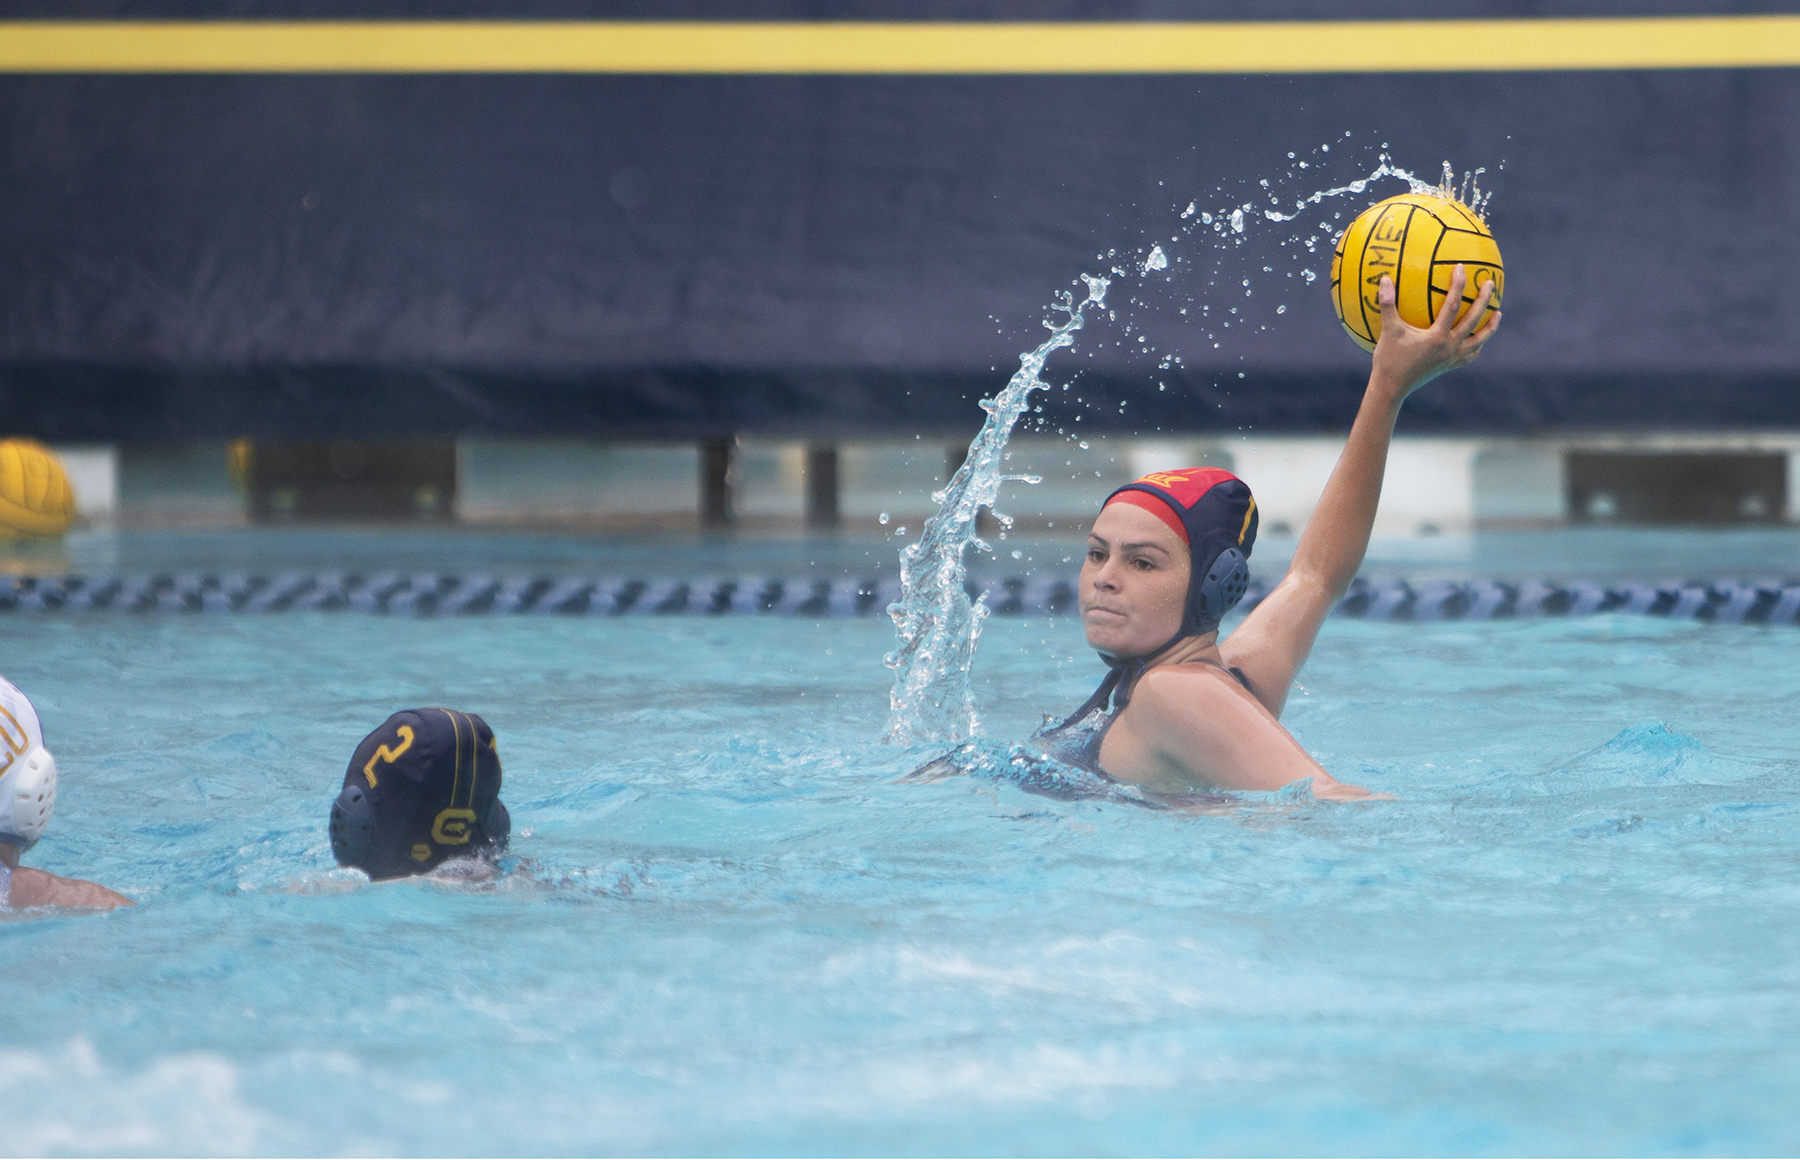 Photo of Cal Women's Water Polo player preparing to throw the ball